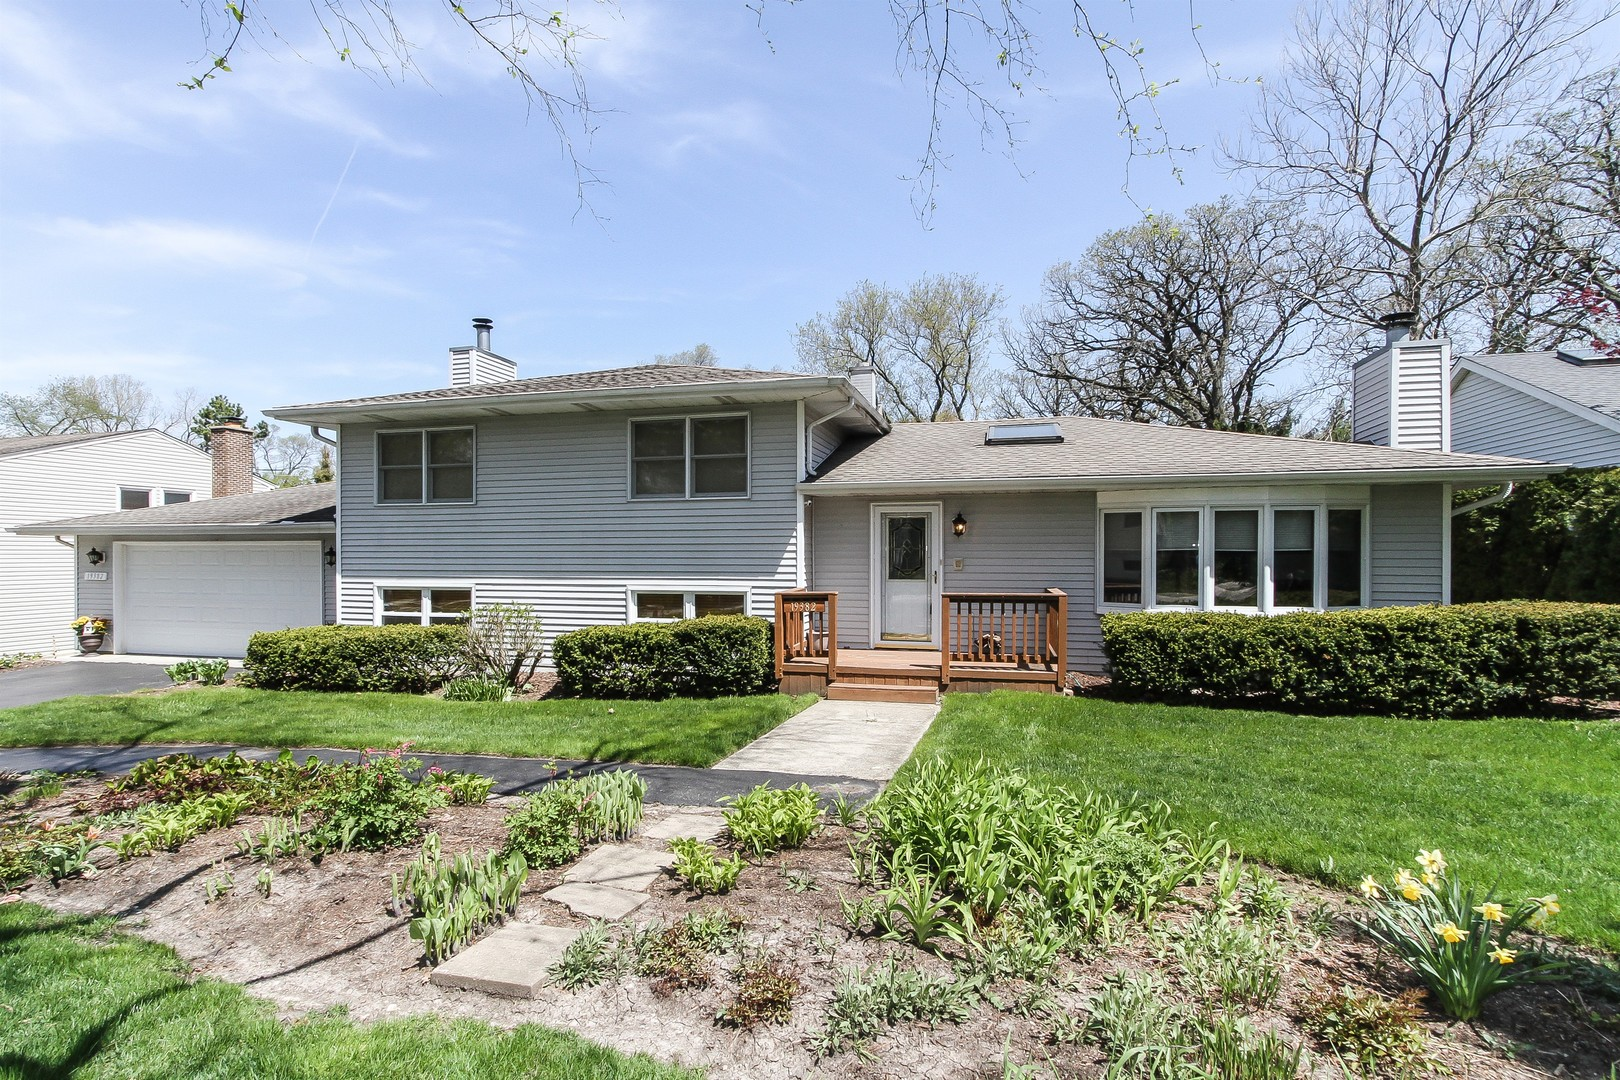 19382 West Prospect Drive, Mundelein in Lake County, IL 60060 Home for Sale